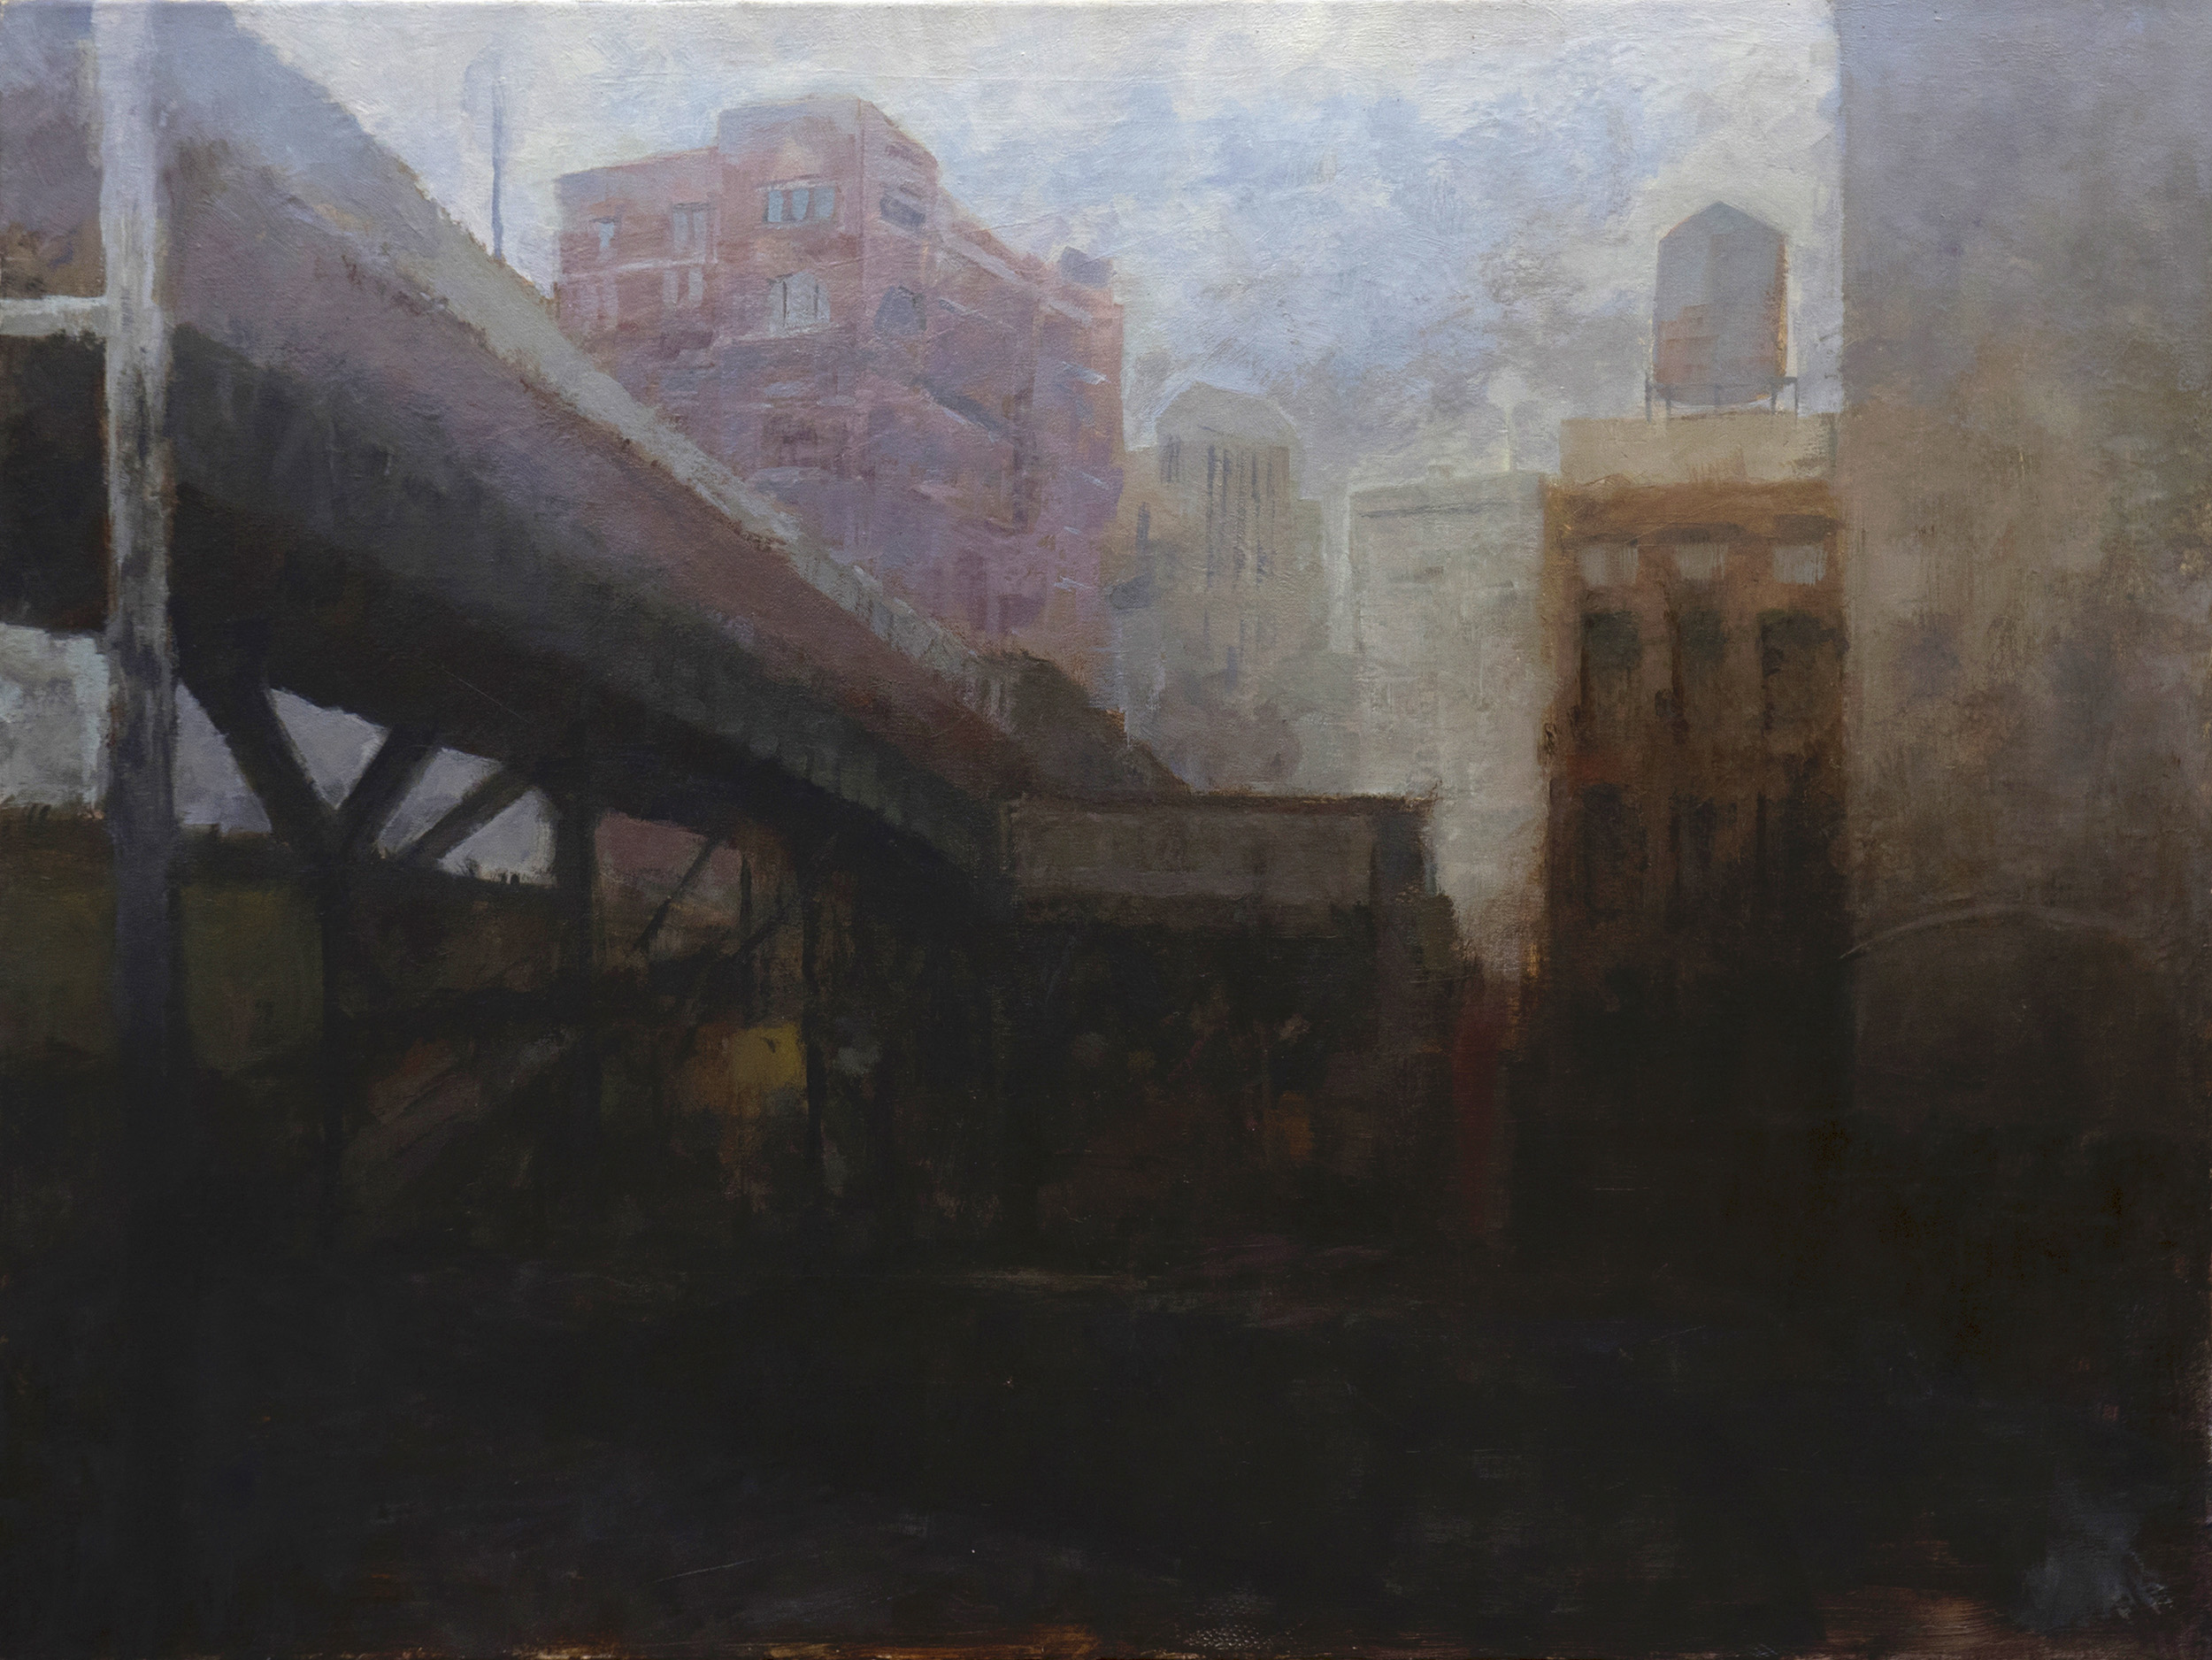 Painting, 'City's Whisper,Sustained', depicting an imaginary New York cityscape